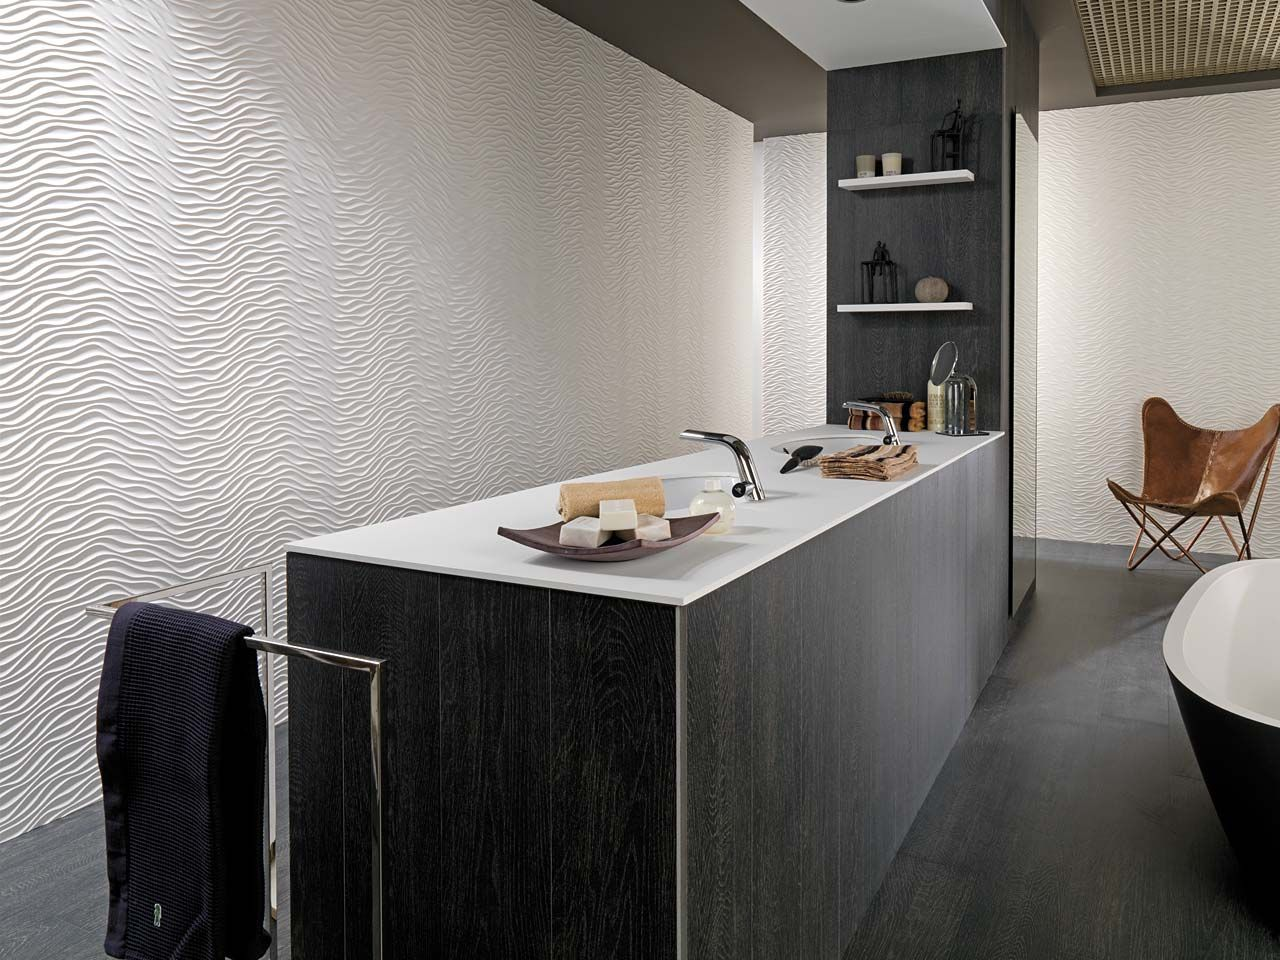 Porcelanosa S Ceramic Tiles For Modern Bathroom Space